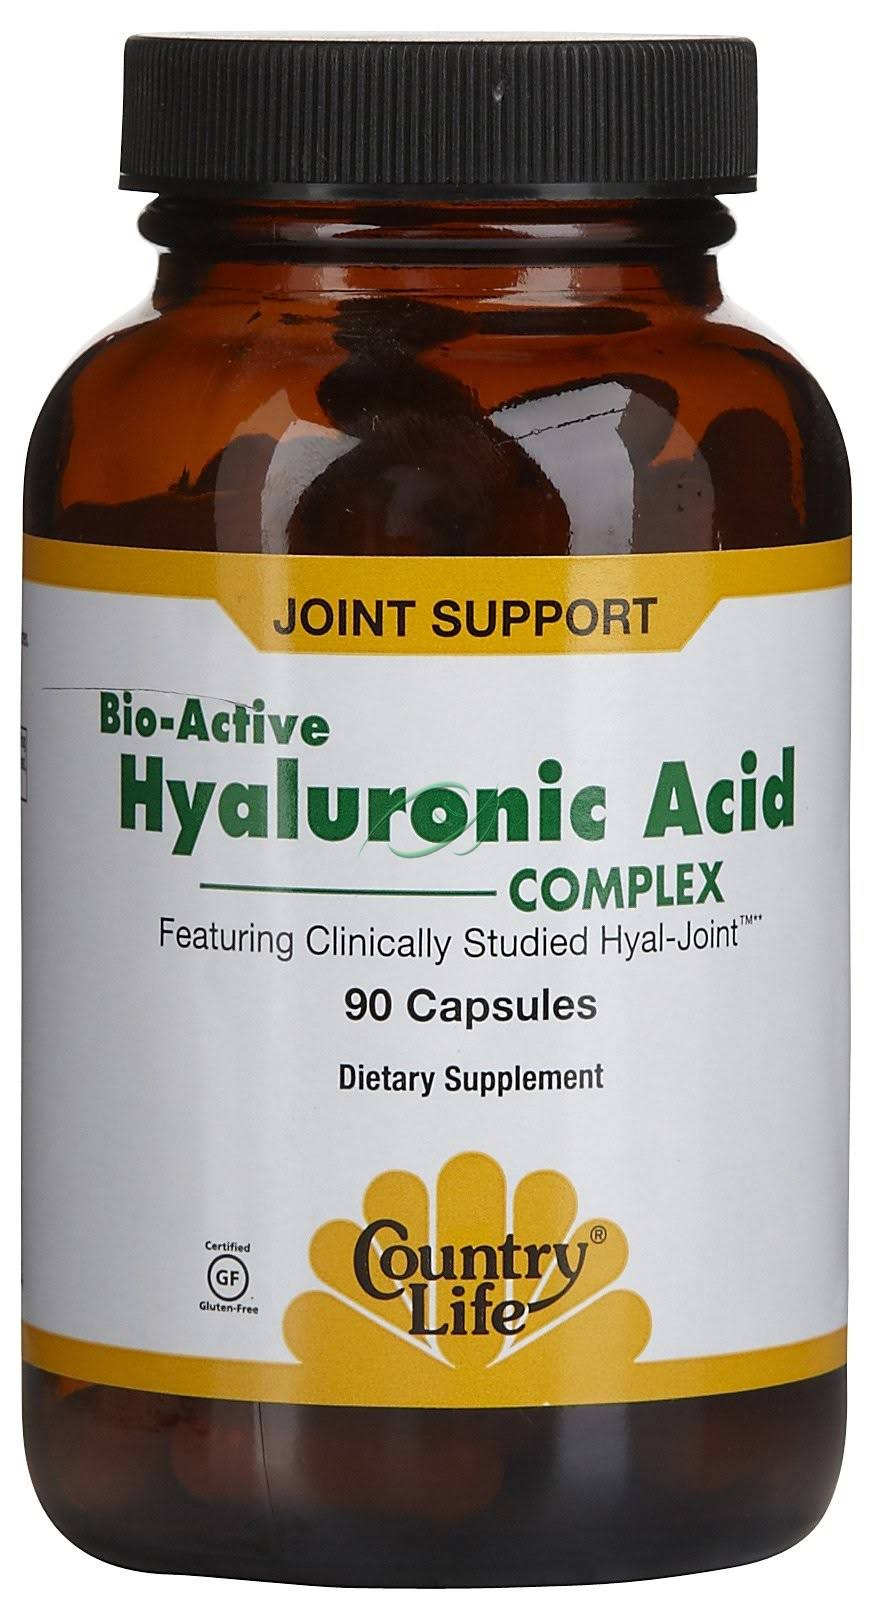 Country Life Bio-Active Hyaluronic Acid Complex Capsules - x90